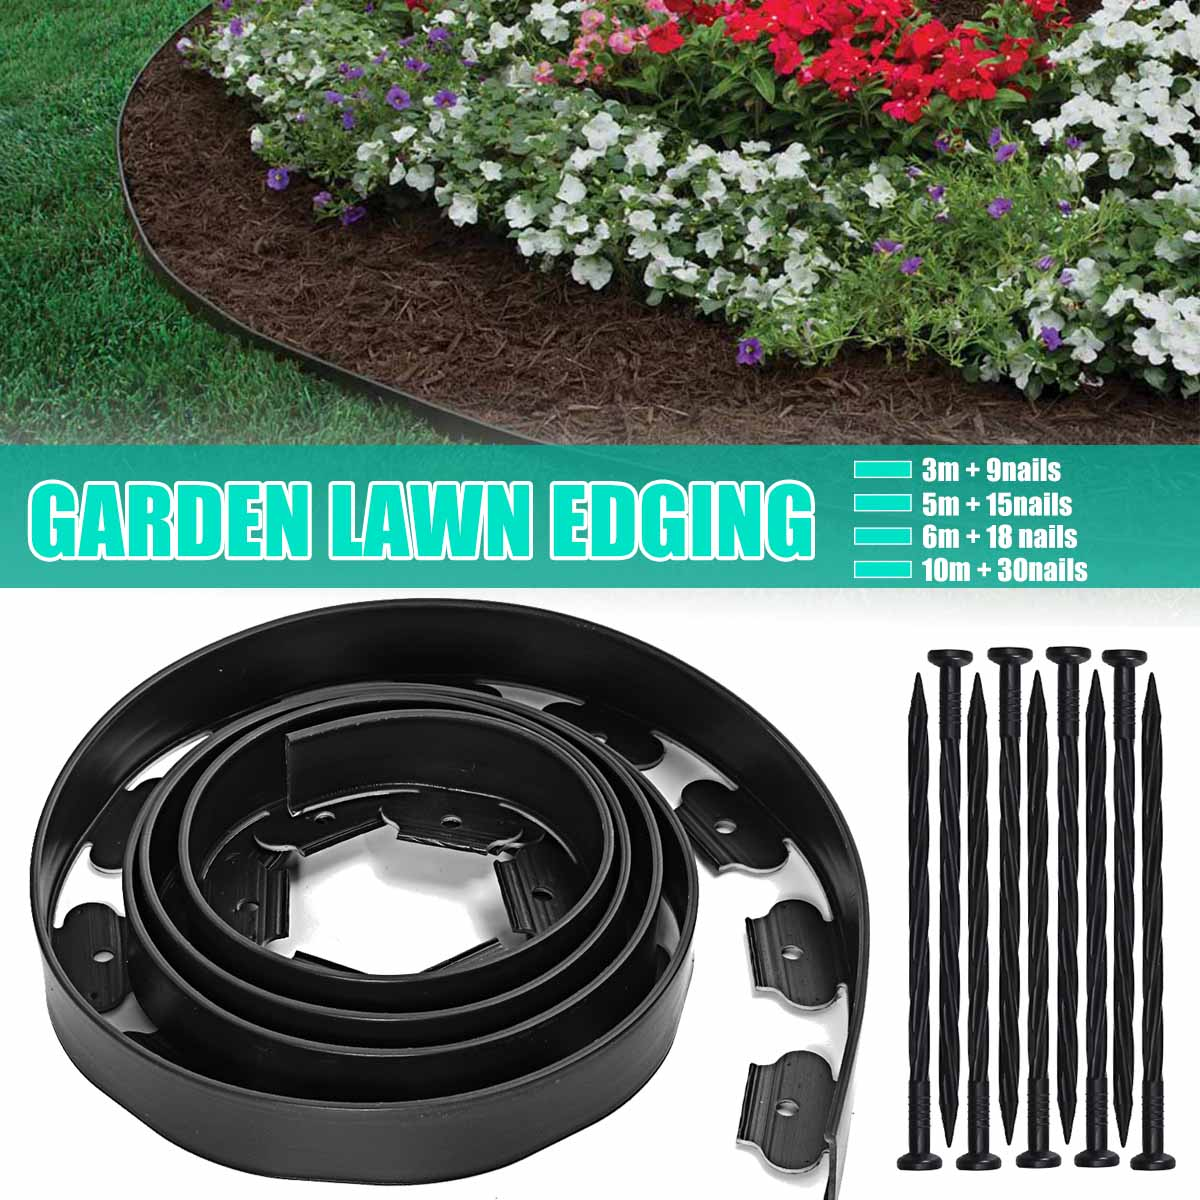 3 6m Garden Flexible Lawn Grass Plastic Edging Border Landscape Edging Easy Install Insert Black Green